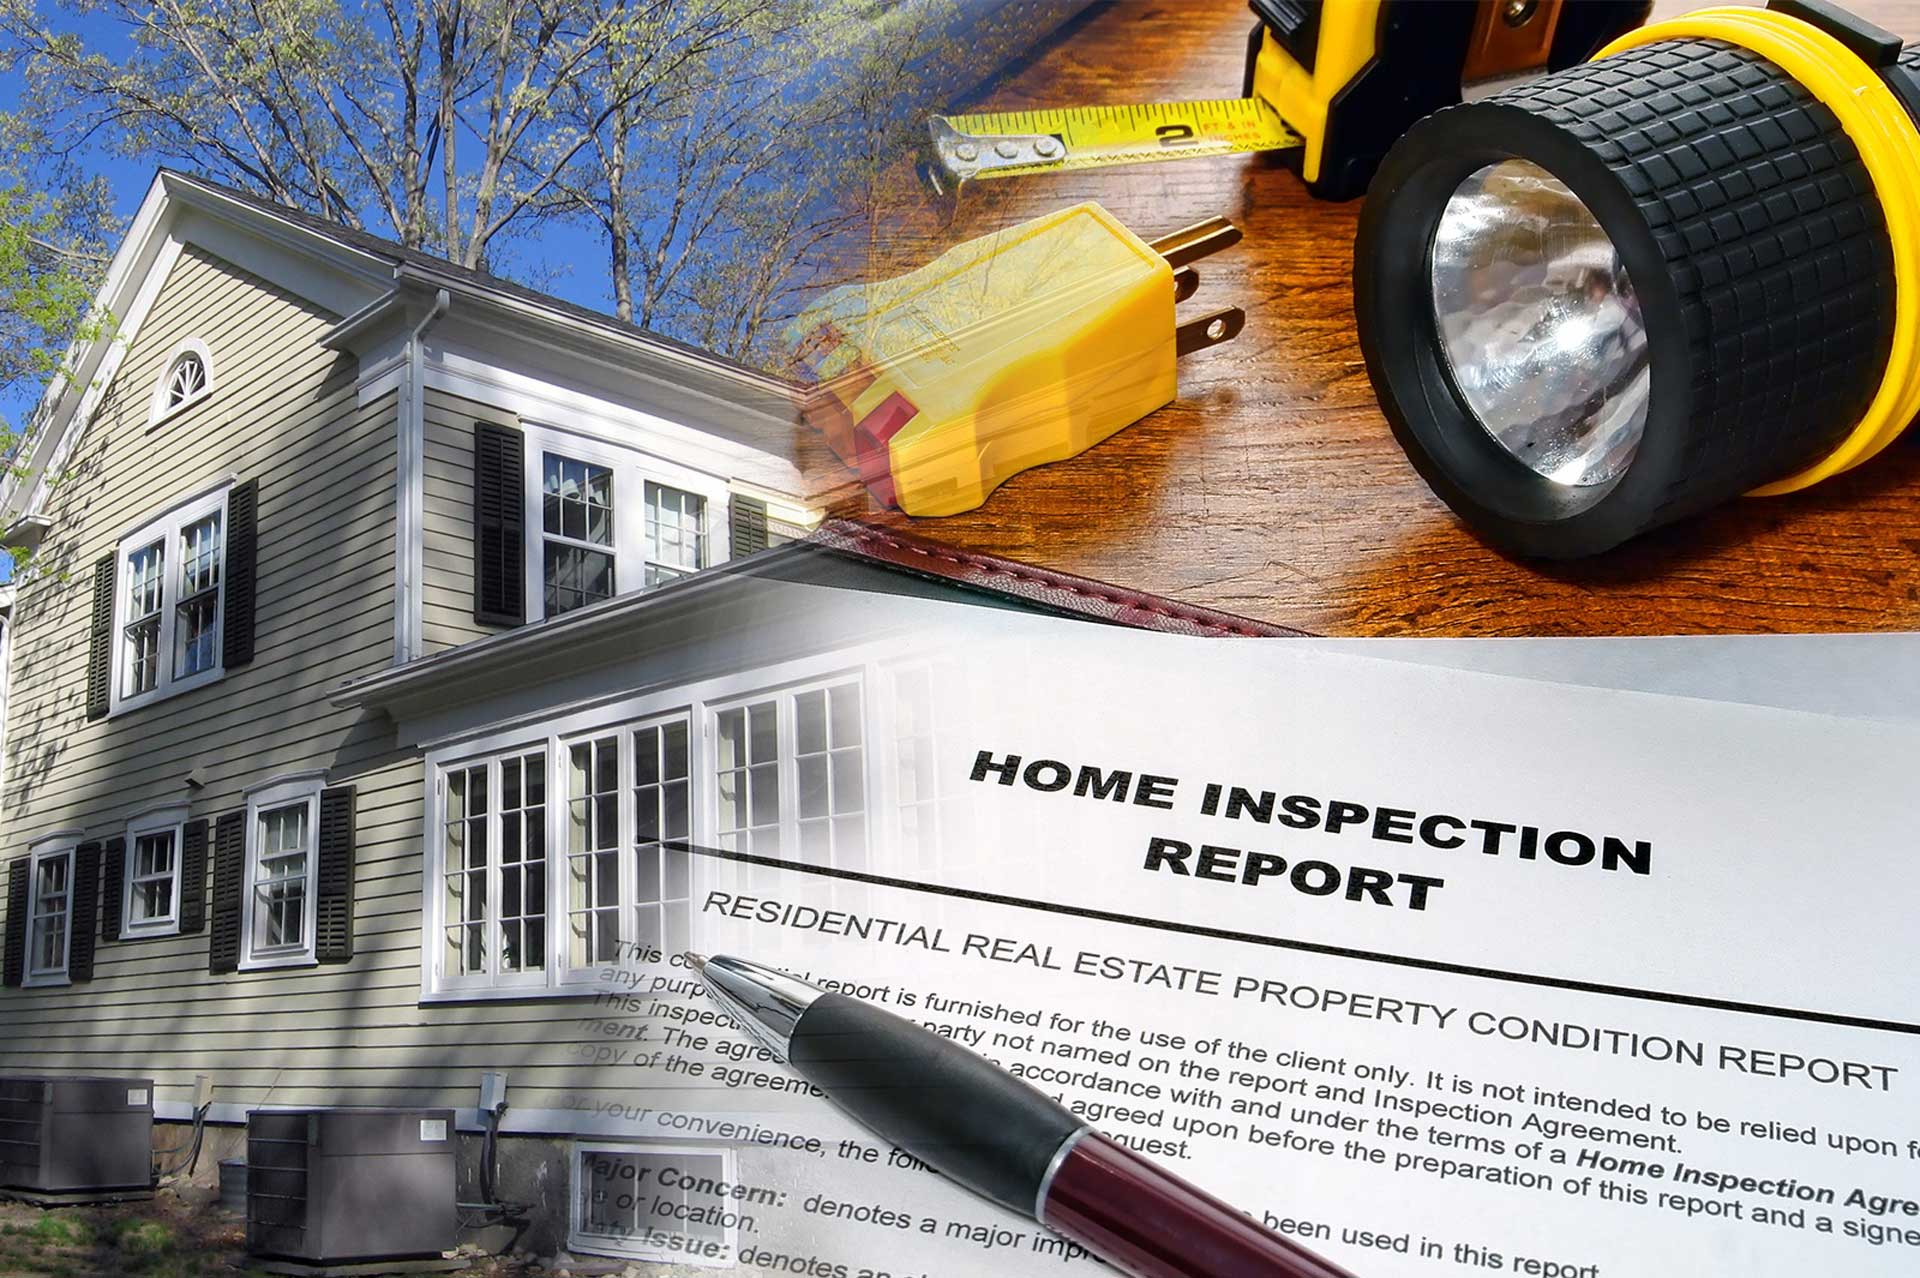 home inspection report, inspection tools, and home